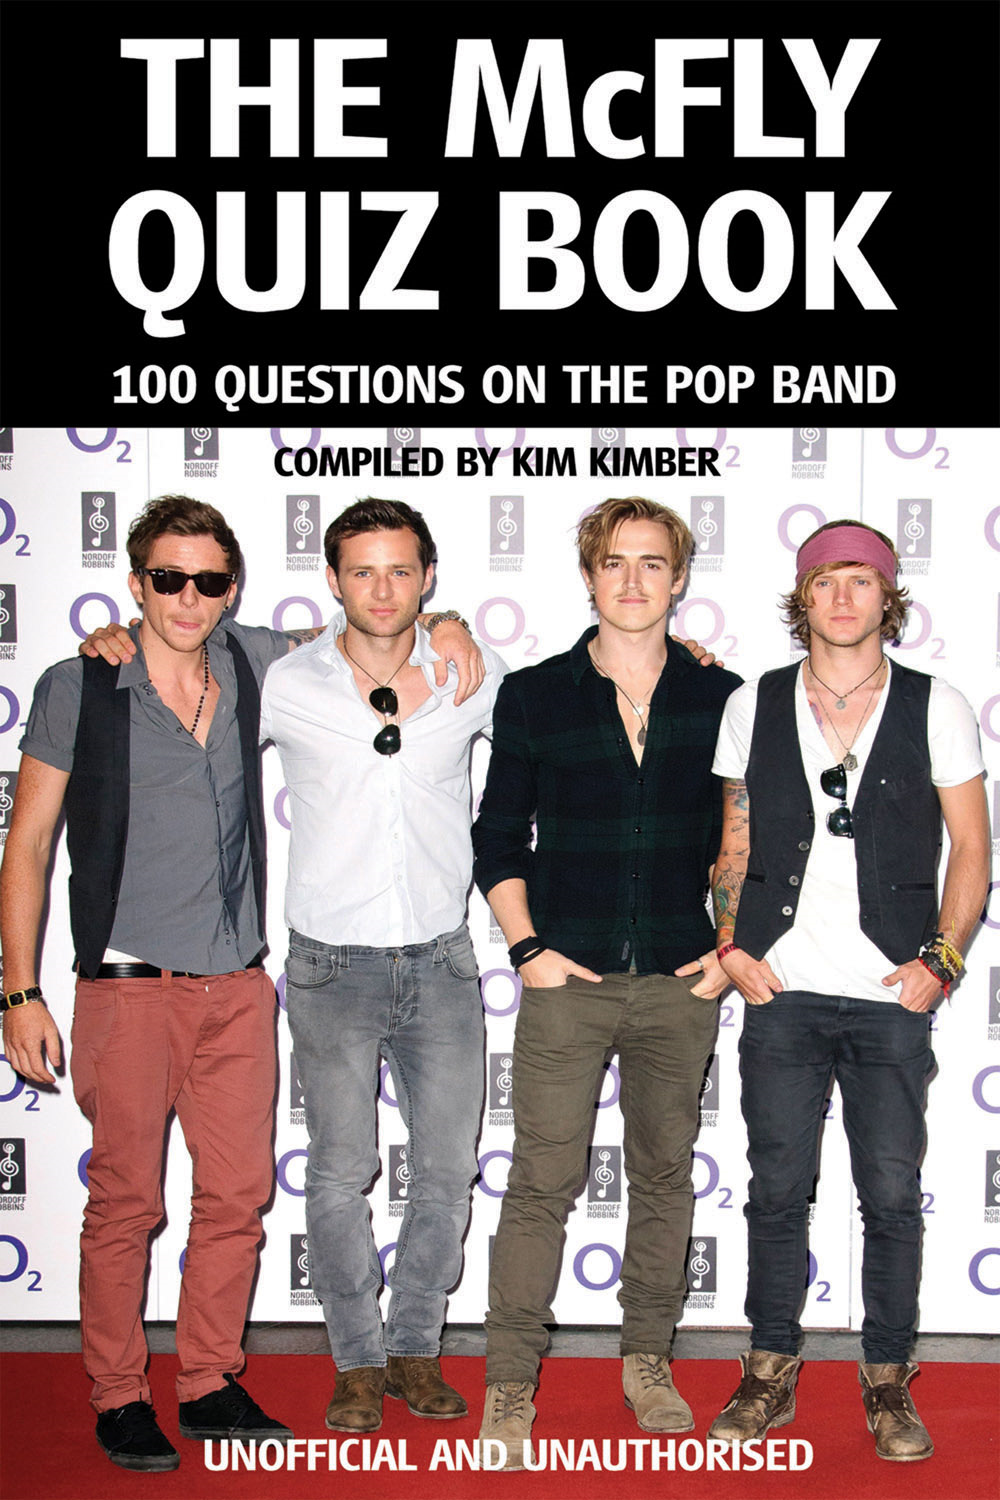 The McFly Quiz Book